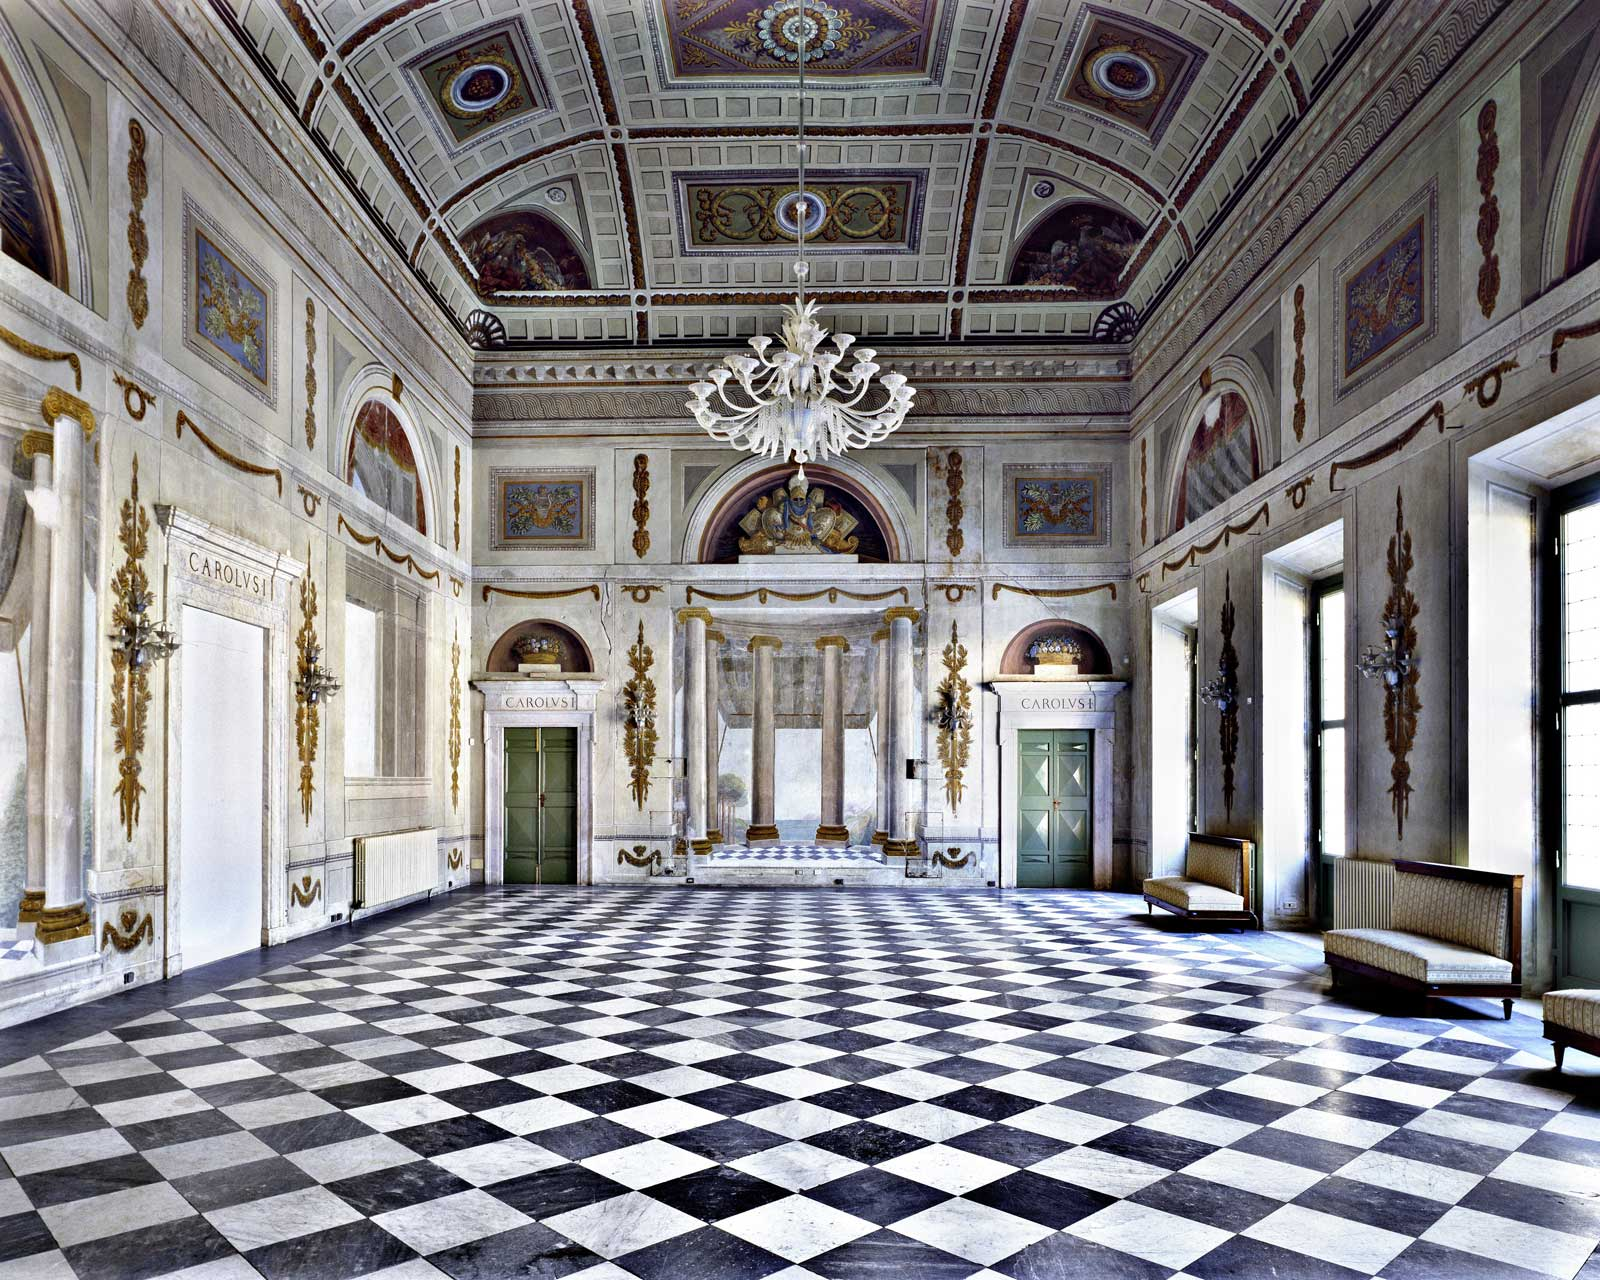 Photographic architecture by massimo listri archaeology wiki - Blog di interior design ...